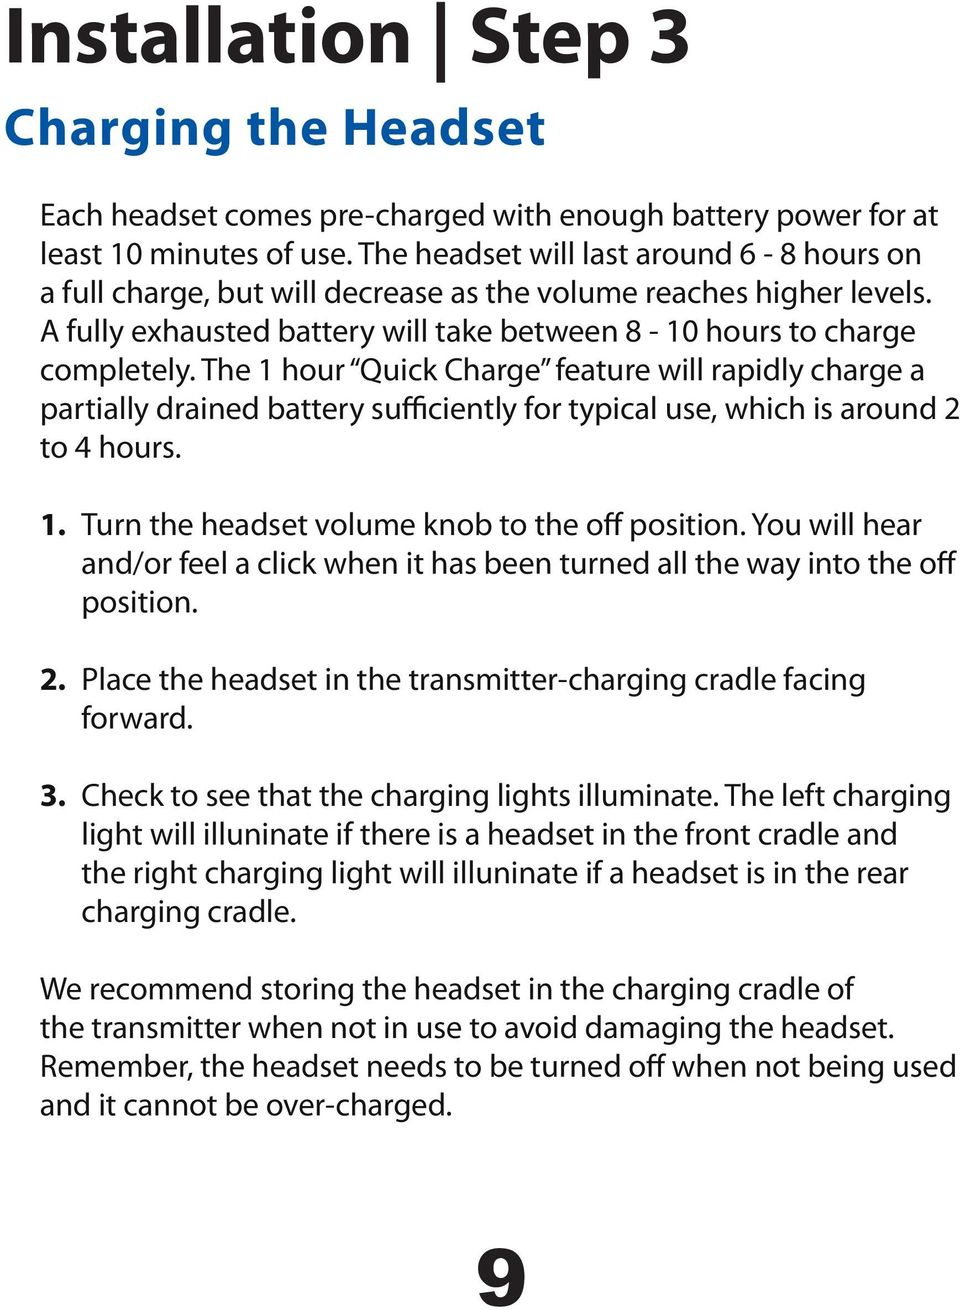 The 1 hour Quick Charge feature will rapidly charge a partially drained battery sufficiently for typical use, which is around 2 to 4 hours. 1. Turn the headset volume knob to the off position.